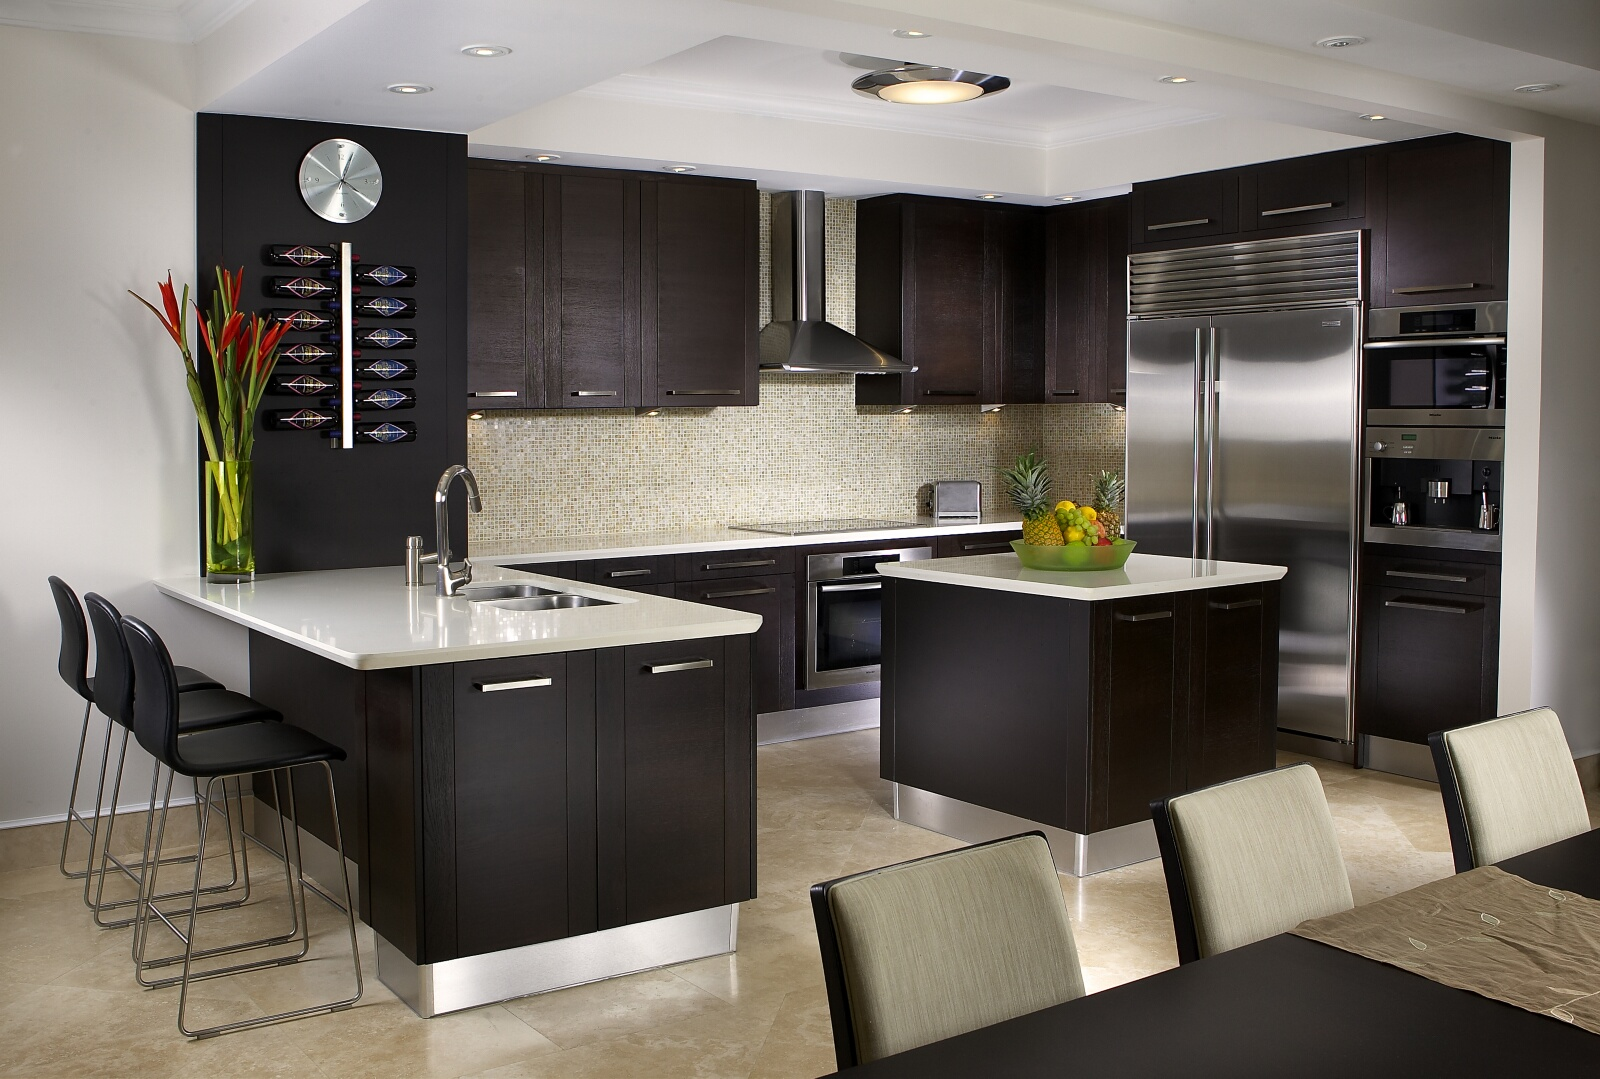 kitchen interior design ideas kitchen interior design services miami florida